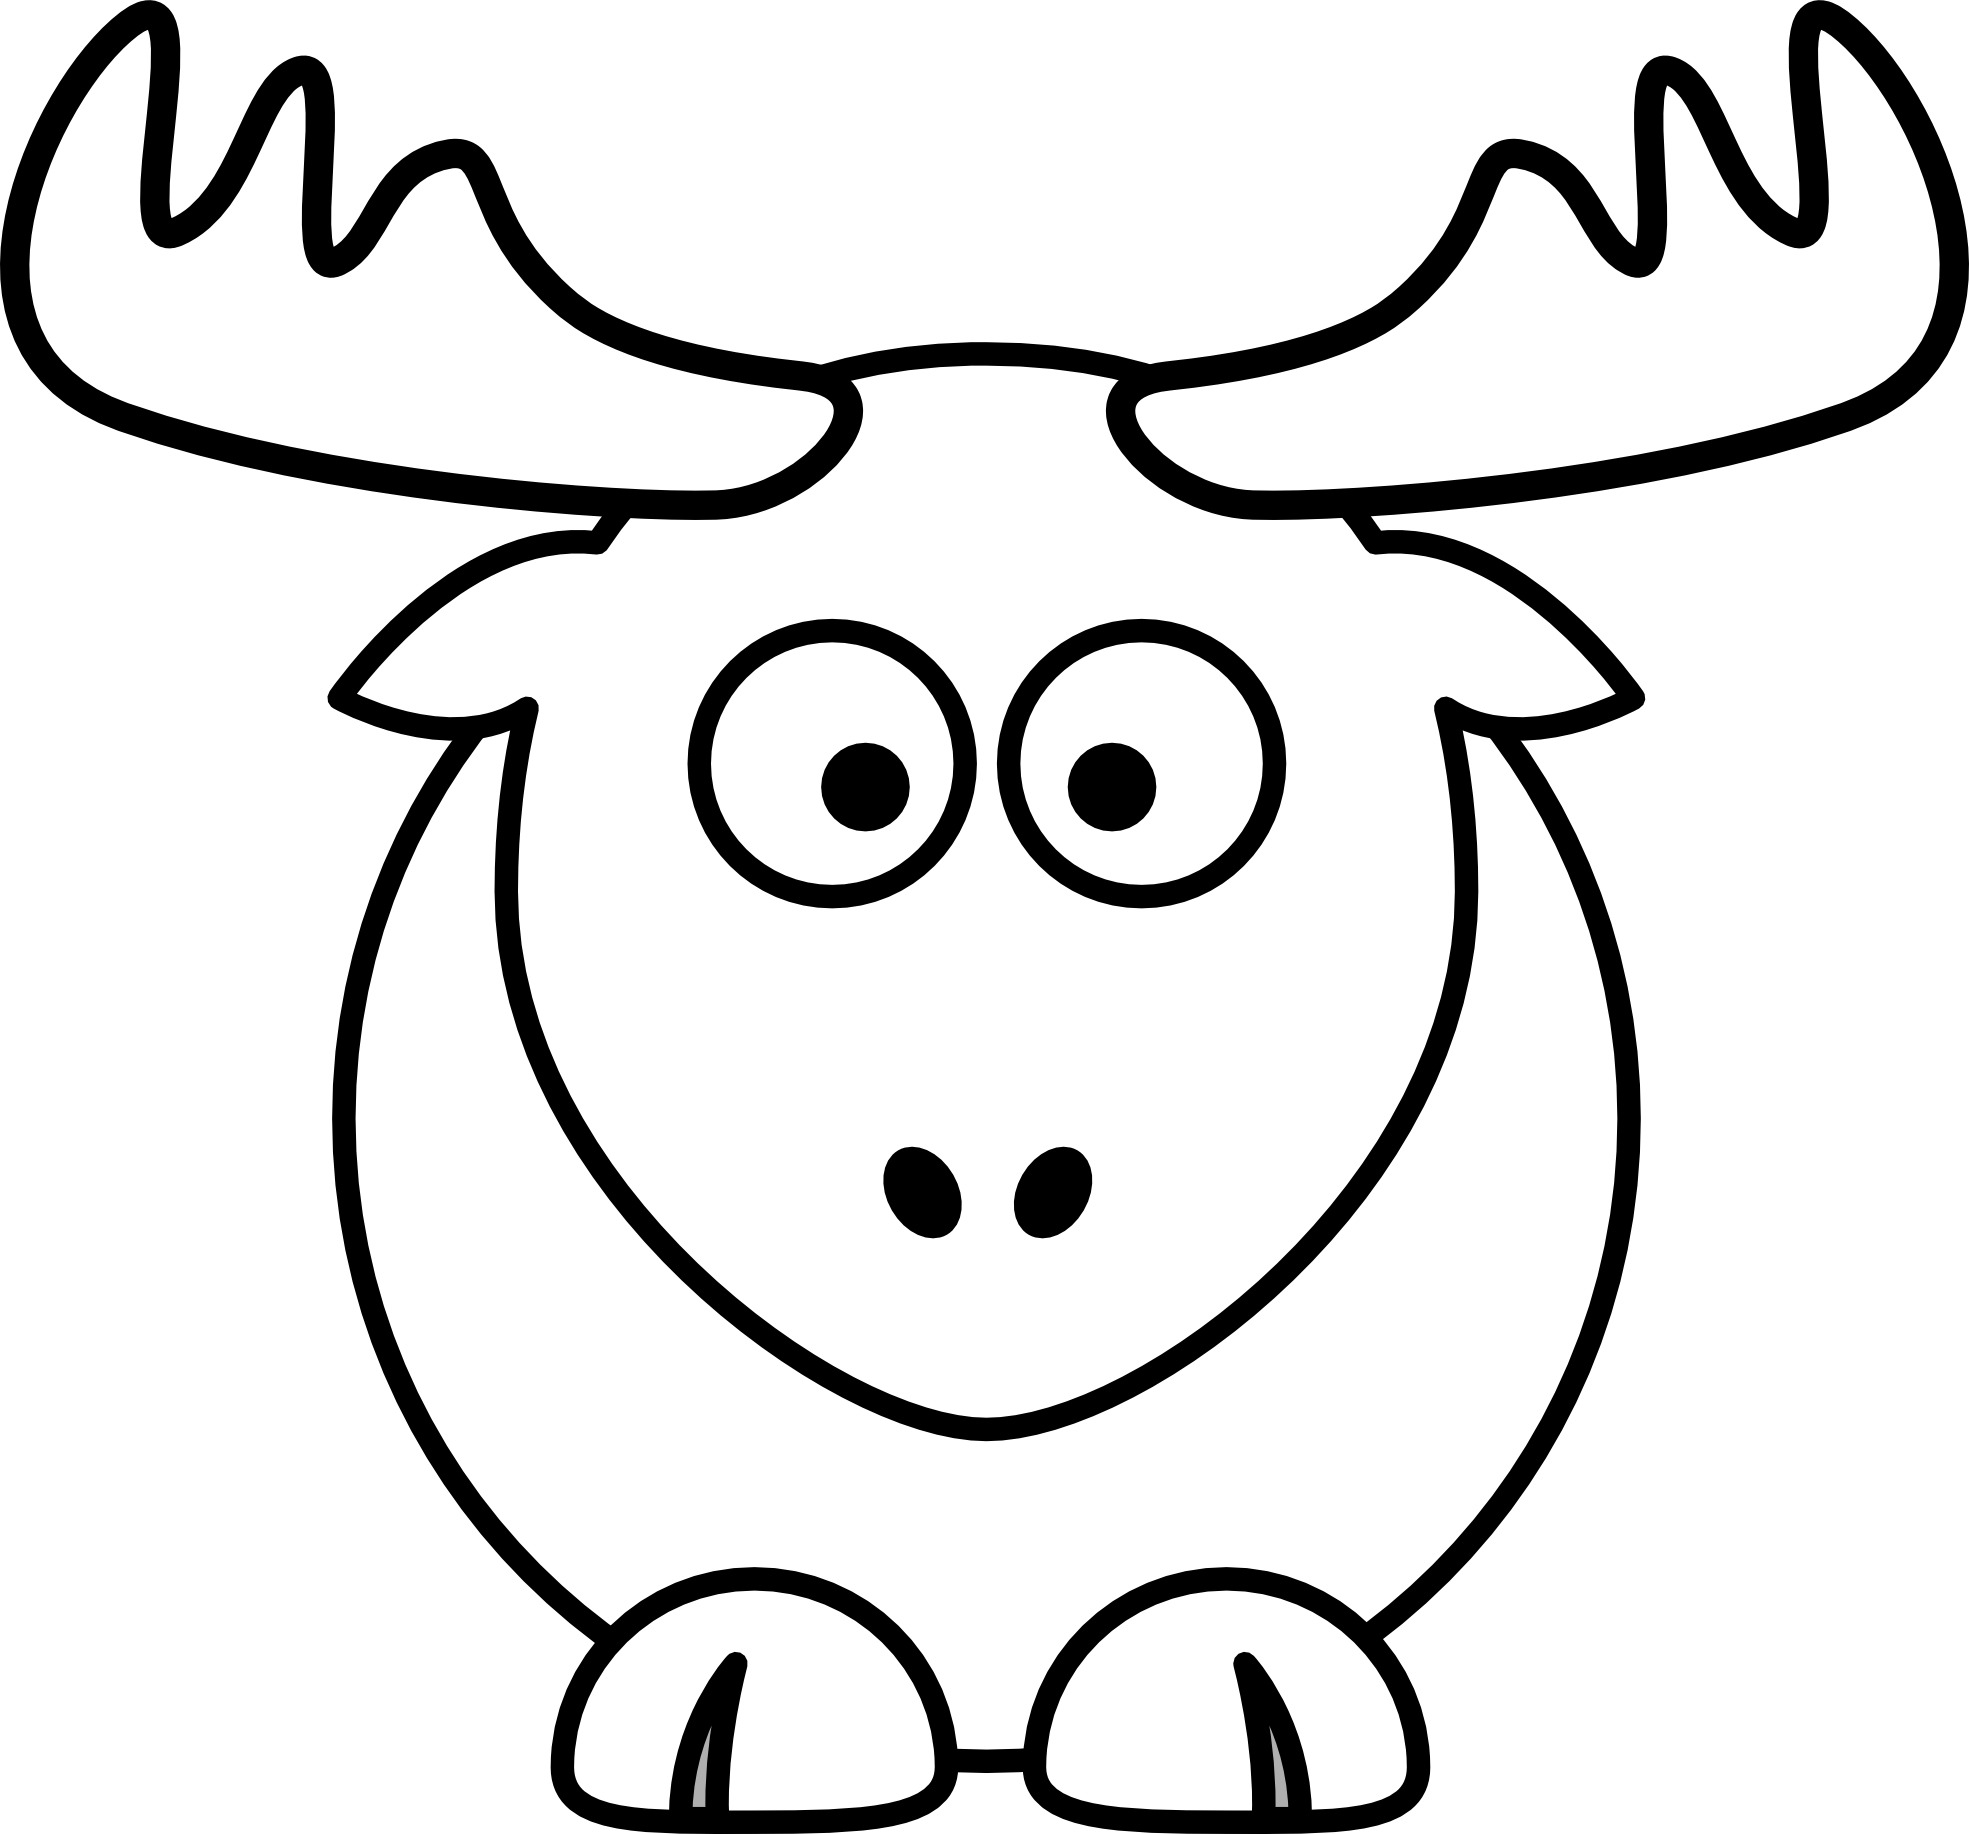 Clip Art Reindeer Clipart Black And White reindeer clipart black and white panda free images